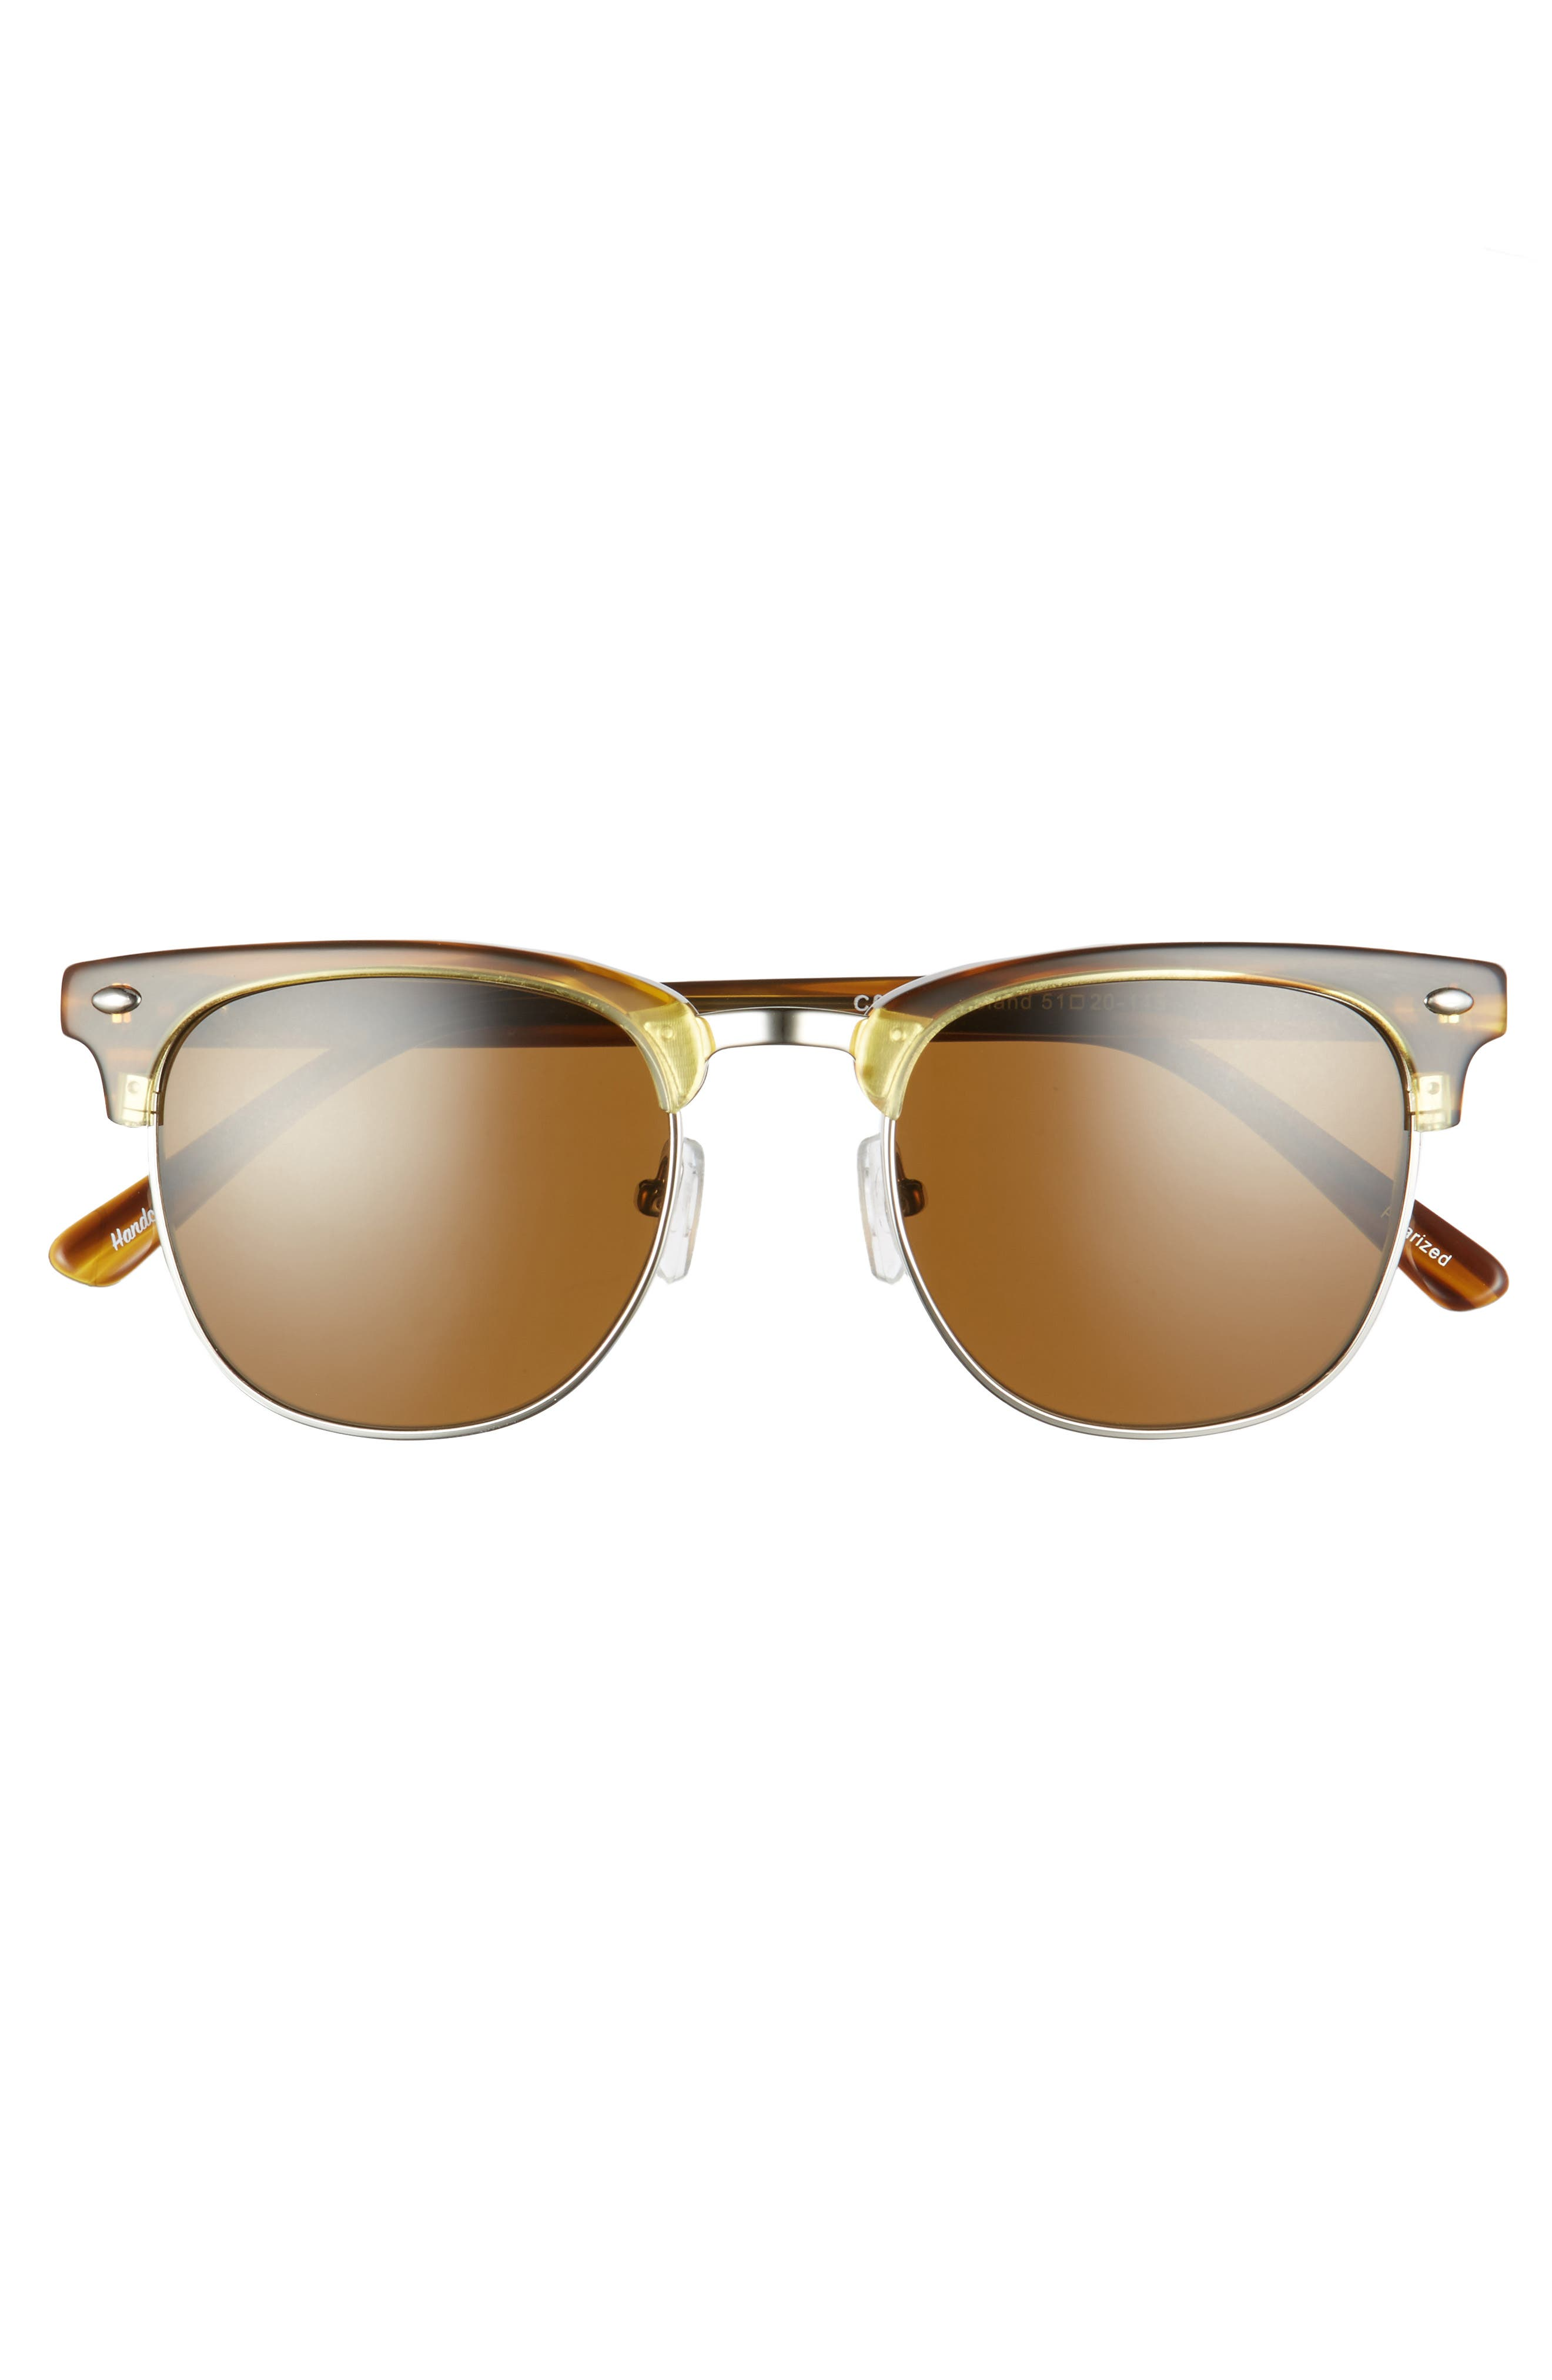 Copeland 51mm Polarized Sunglasses,                             Alternate thumbnail 3, color,                             Amber/ Brown Polar